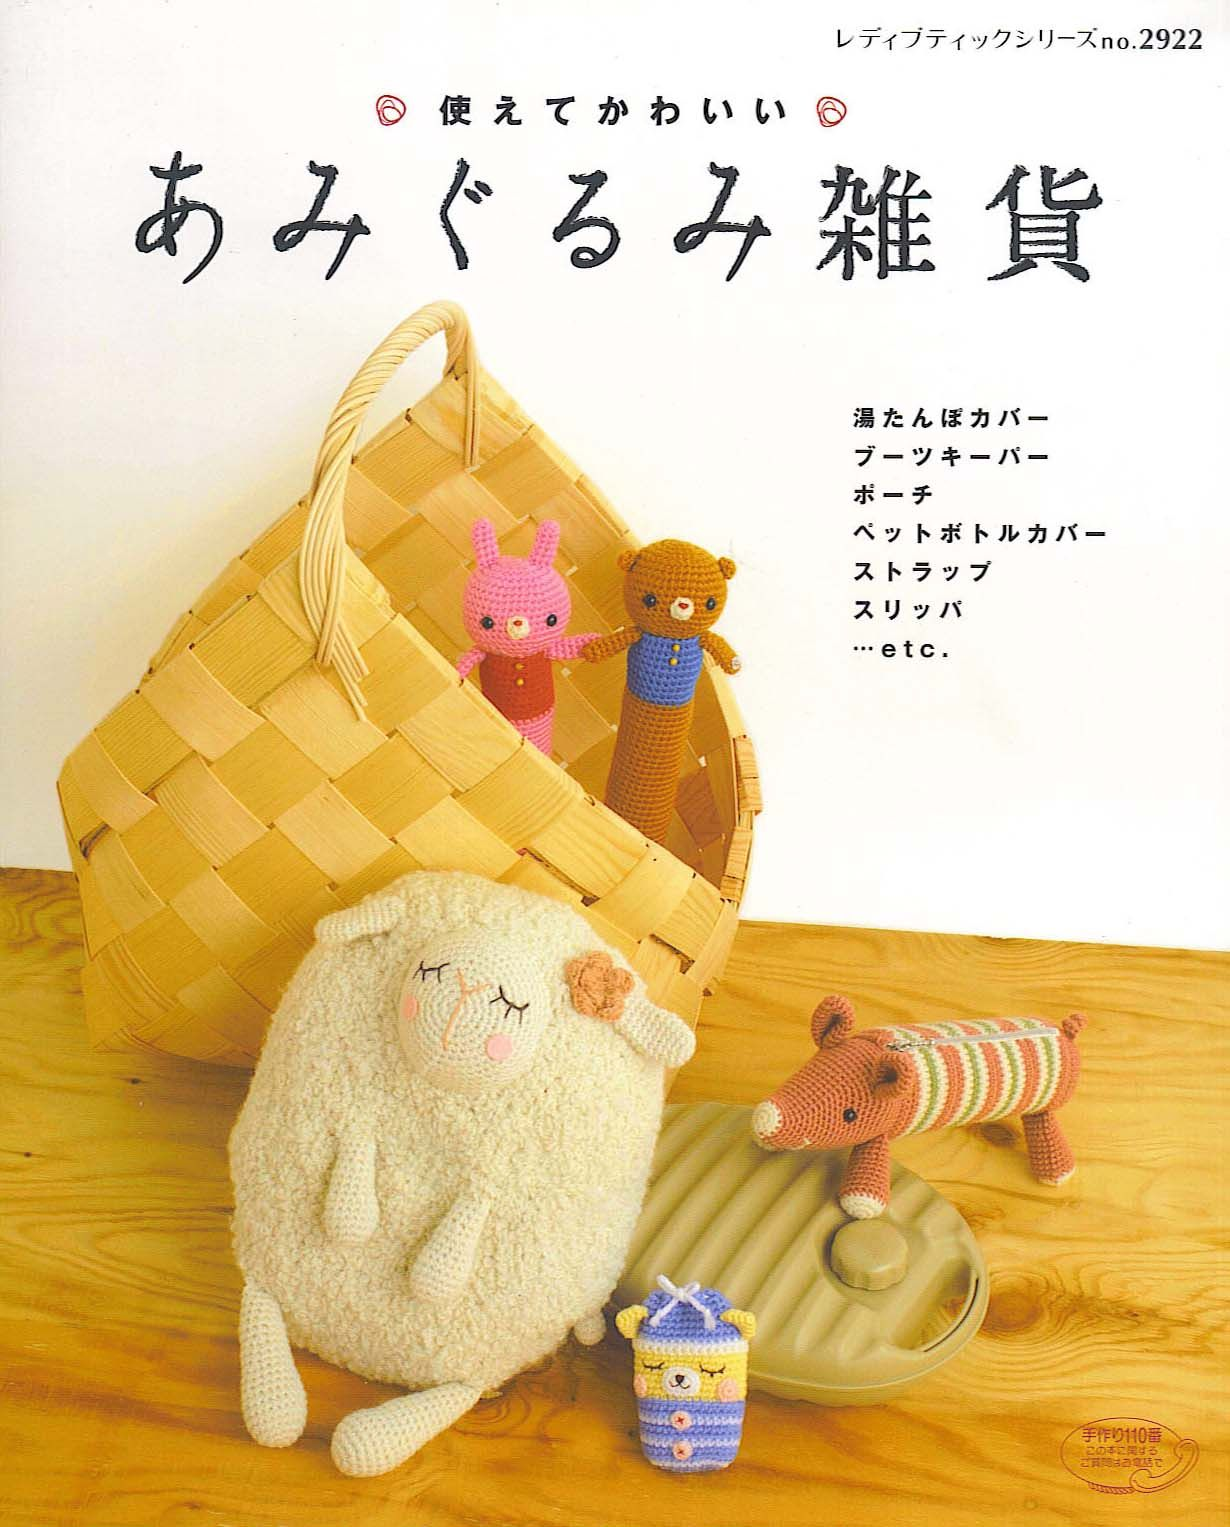 Lady Boutique Series No 2922 Free Craft Ebooks 幼稚園バザー 手作り 編み 図 あみぐるみ